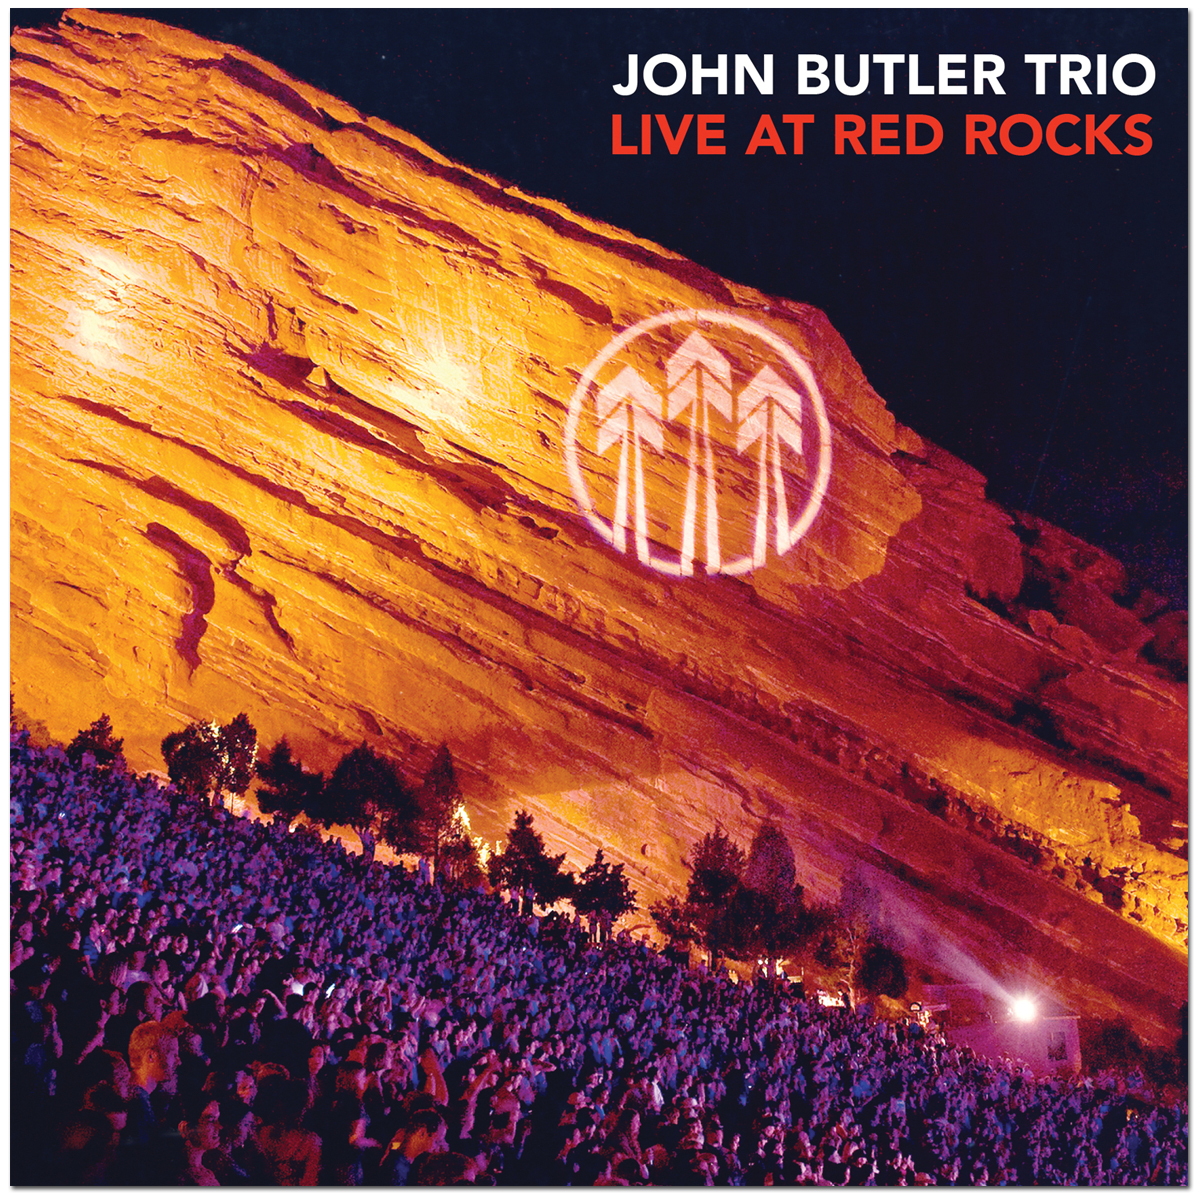 John Butler Trio – Live at Red Rocks Digital Download